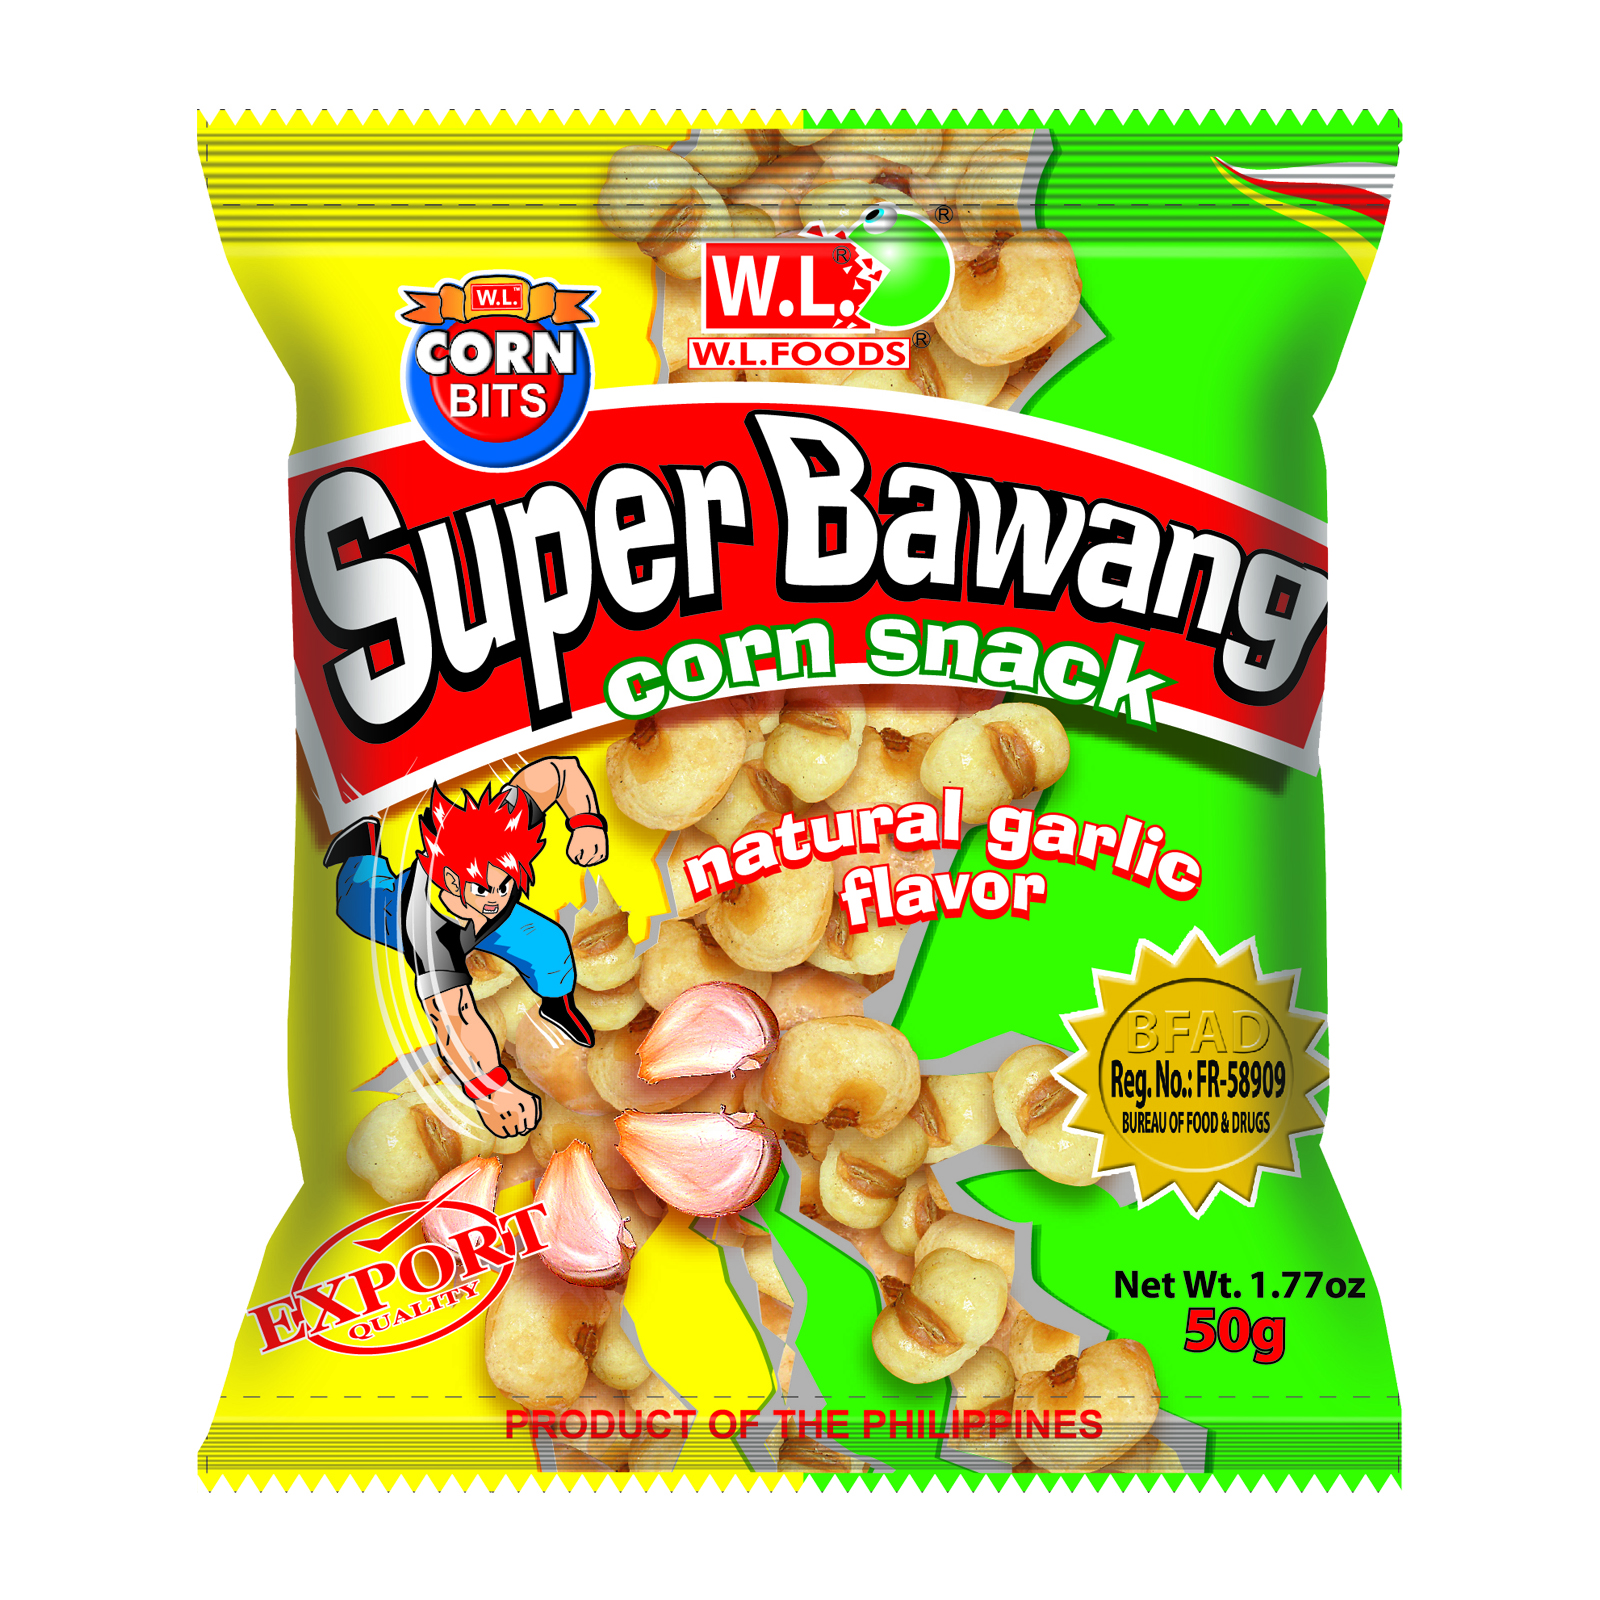 Super Bawang Corn Snack Natural Garlic Flavor 50g